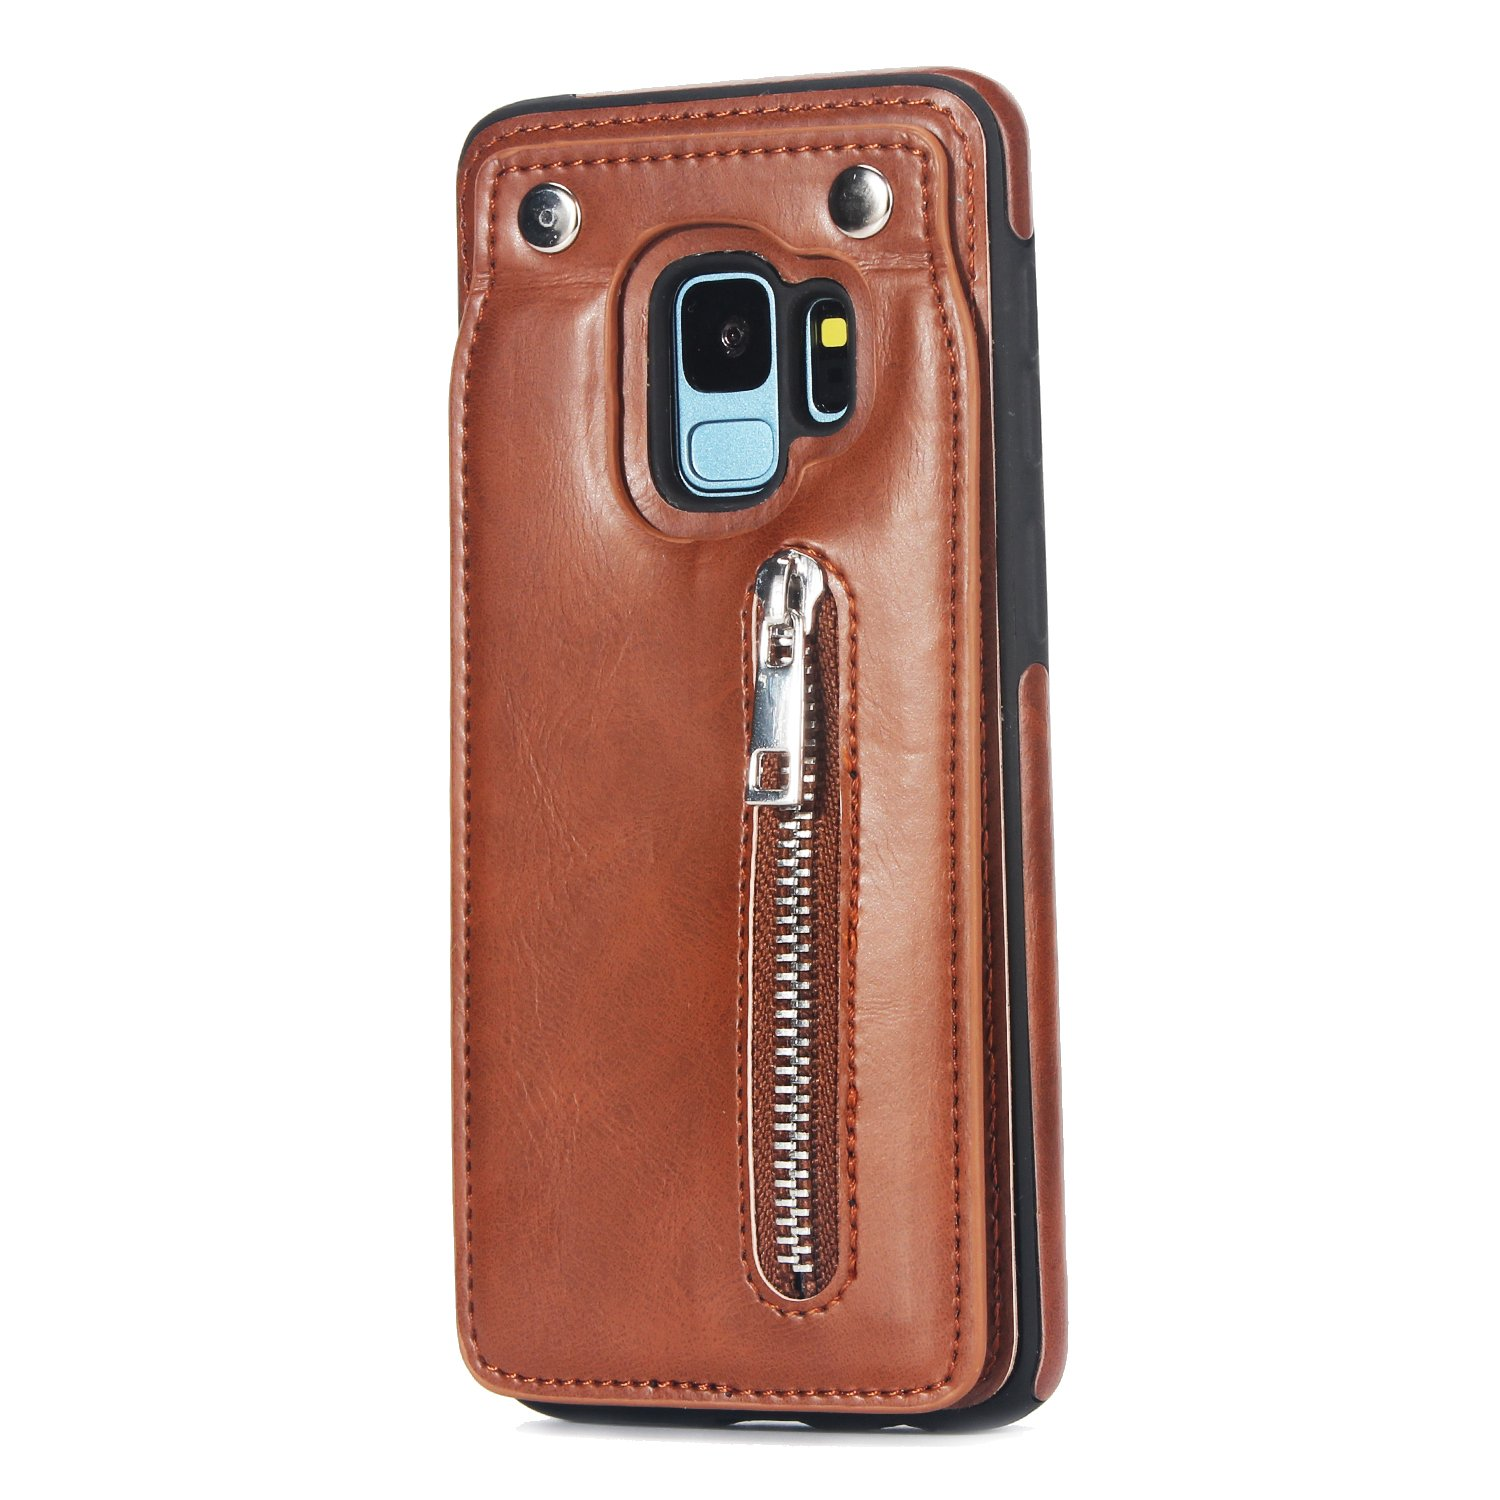 Case for Galaxy S9 Flip Case Premium PU Leather Wallet Cover with Card Holder Money Pocket Durable Shockproof Protective Cover for Galaxy S9,Brown by ikasus